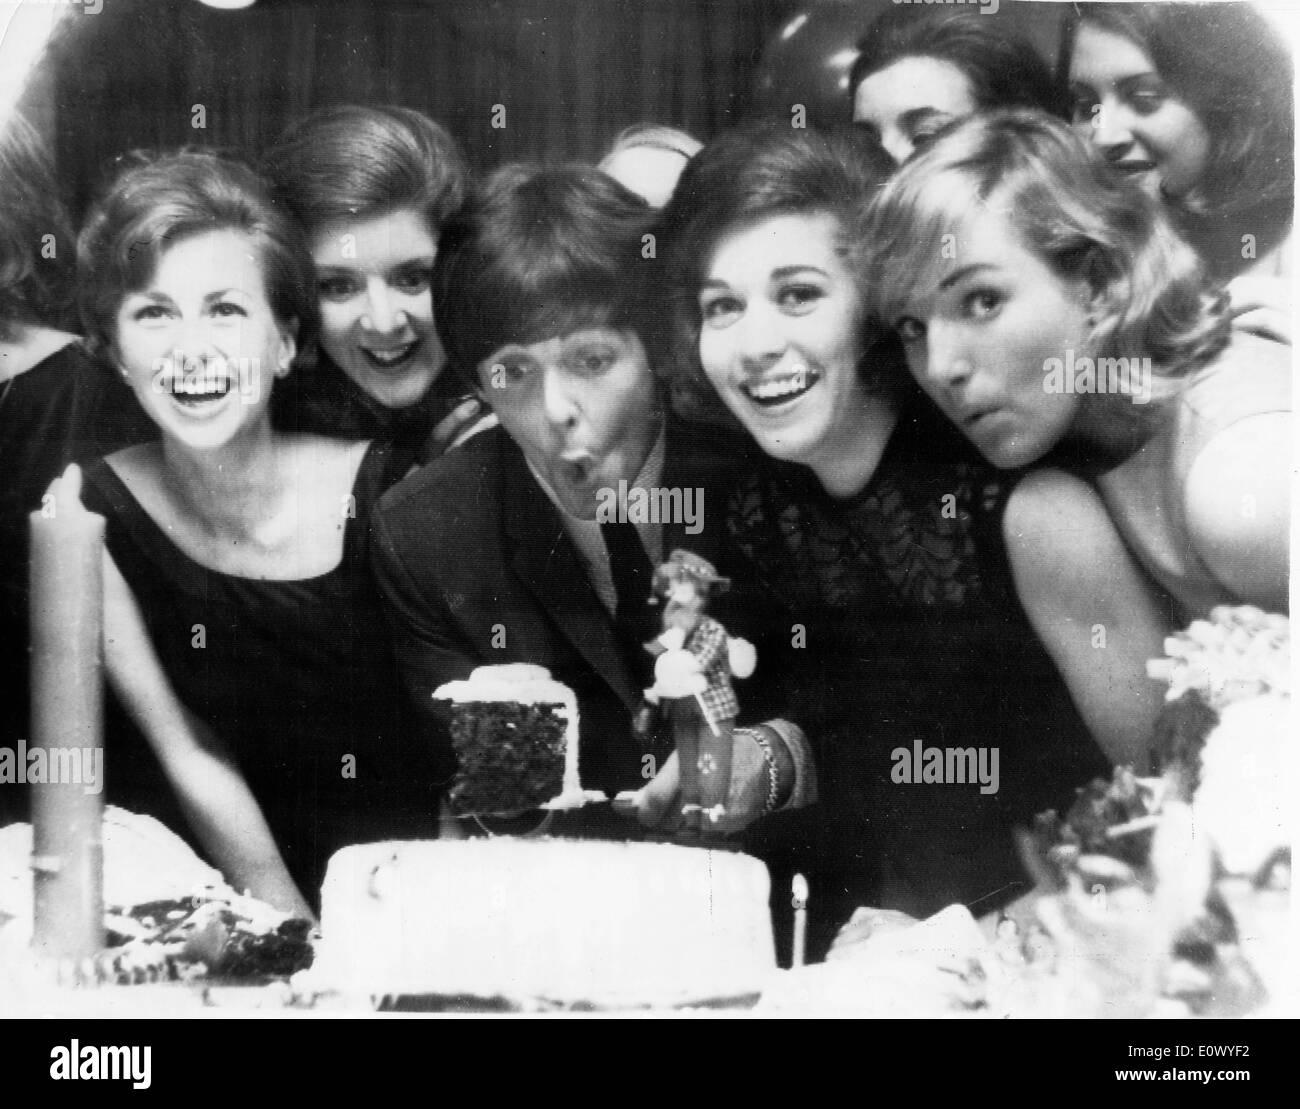 The Beatles Paul McCartney Blowing Out His Candles